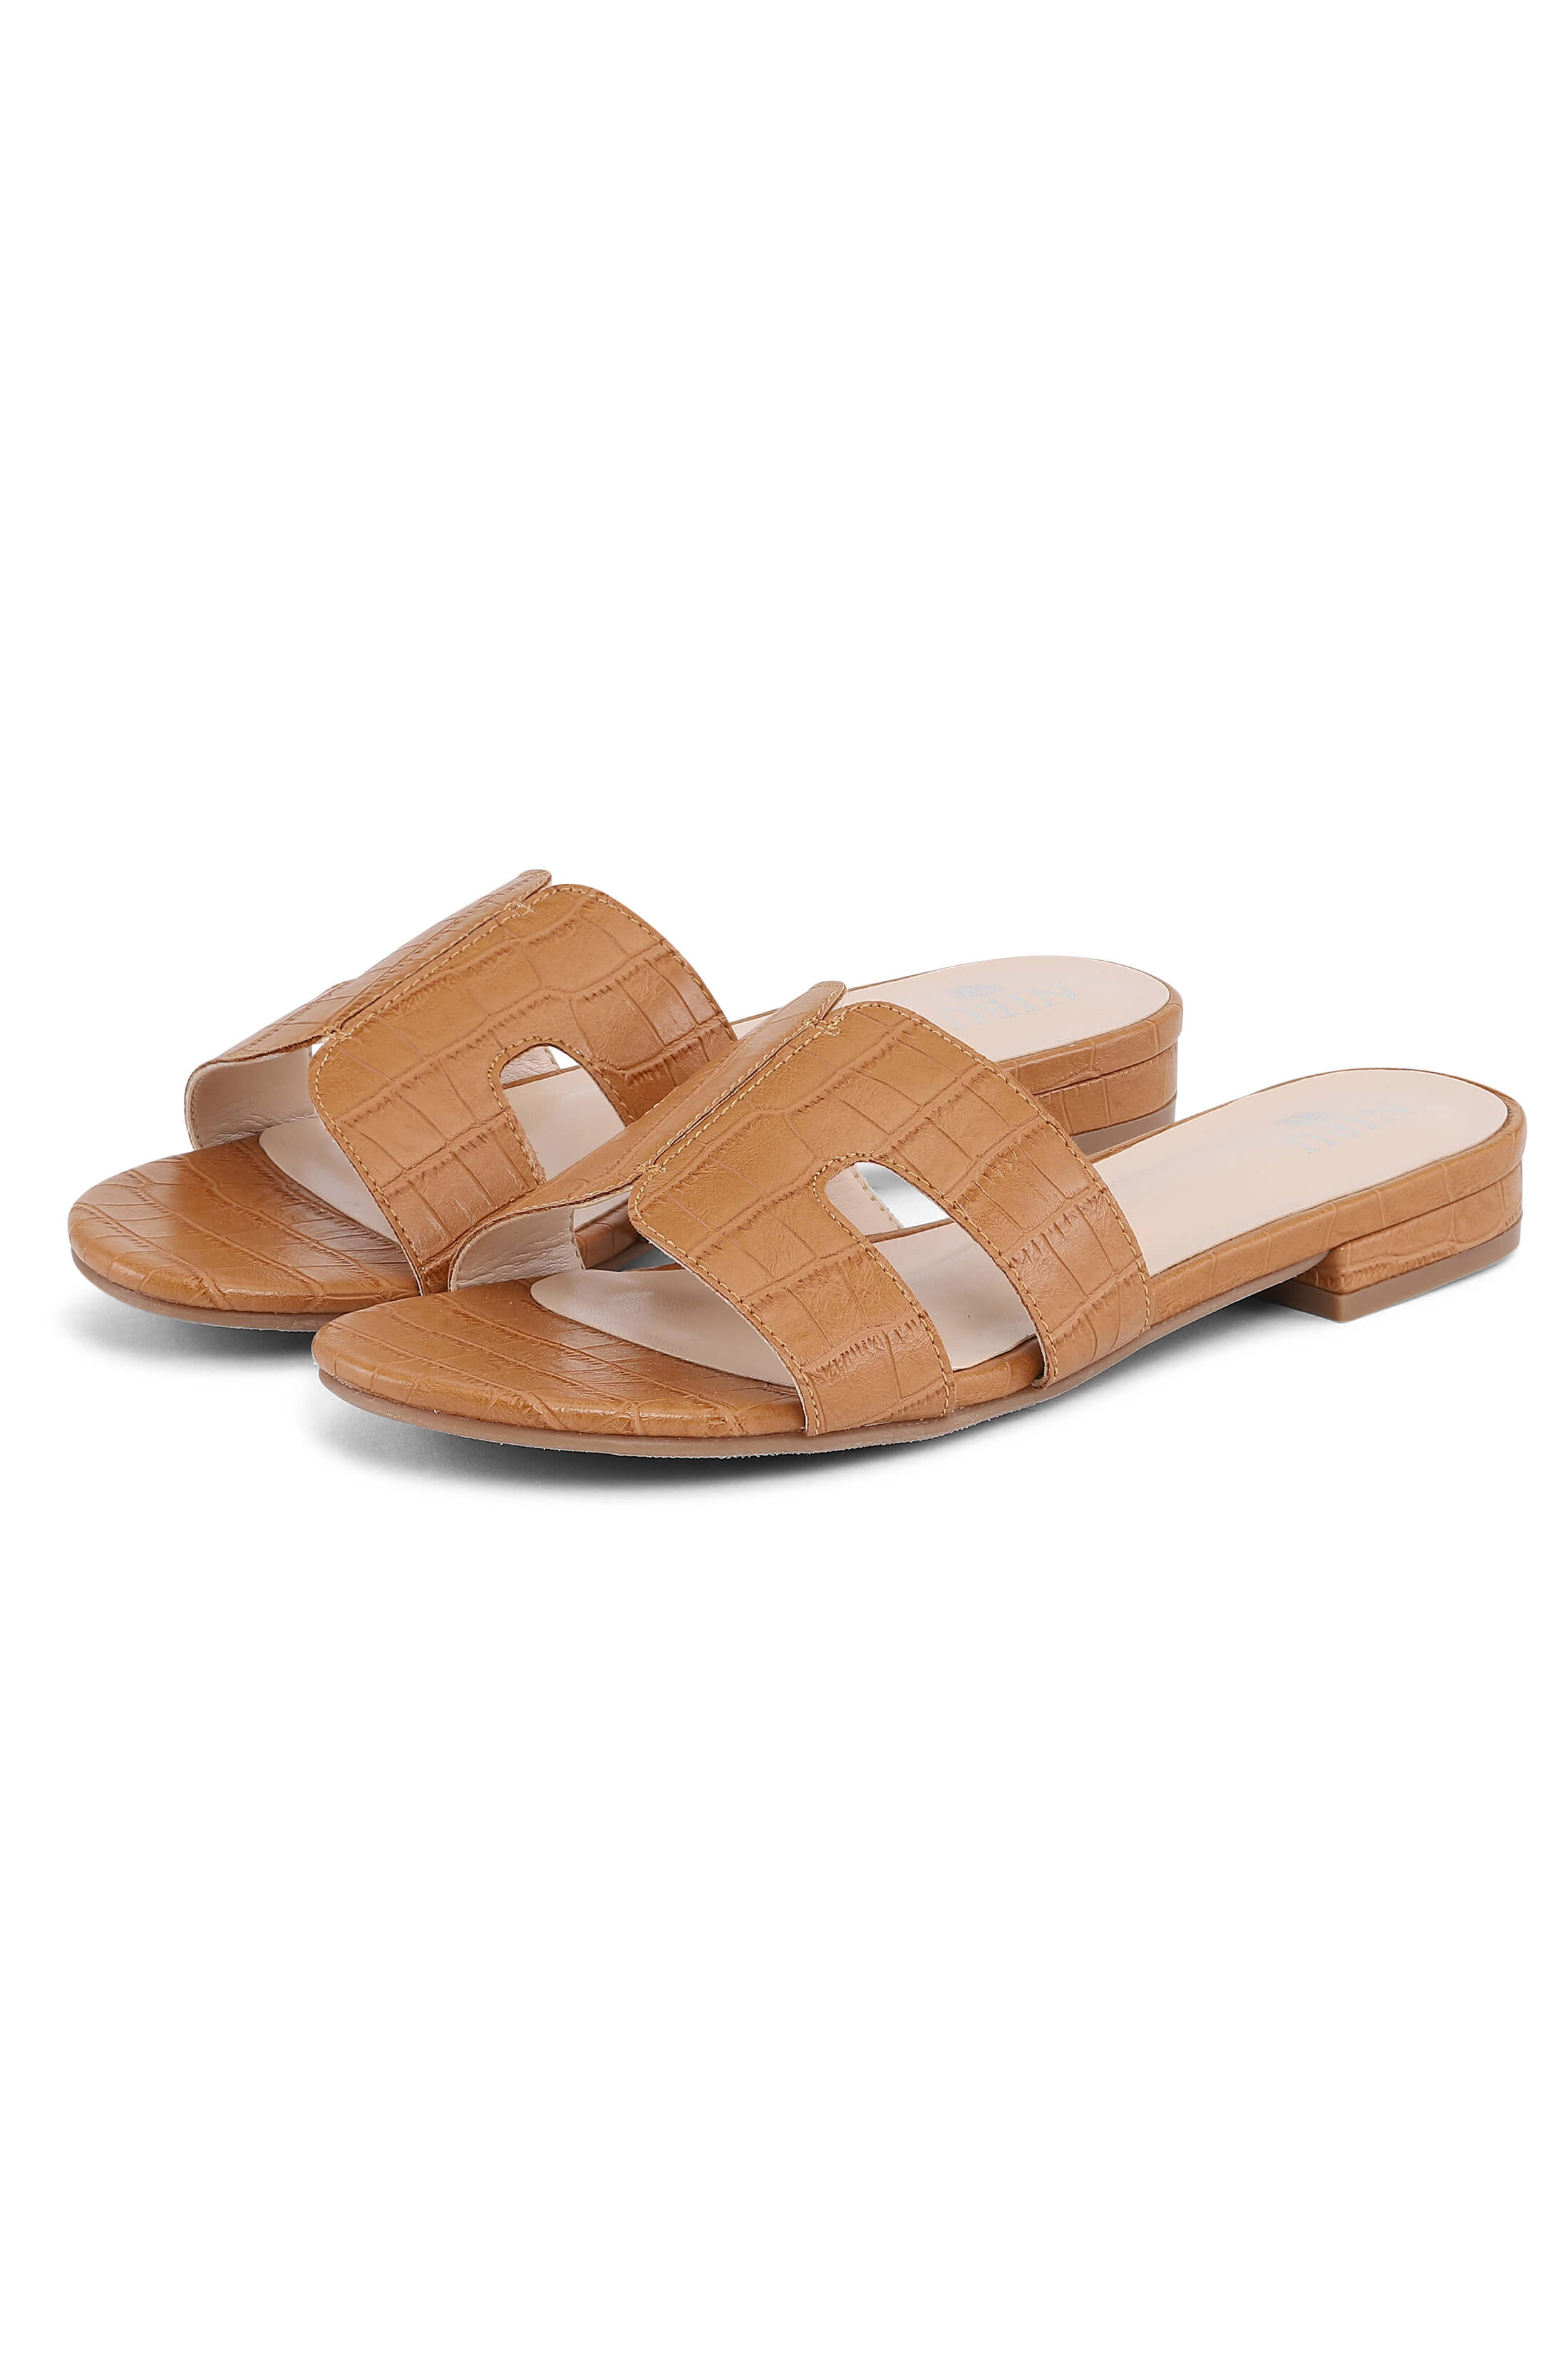 Soft light-brown sandals